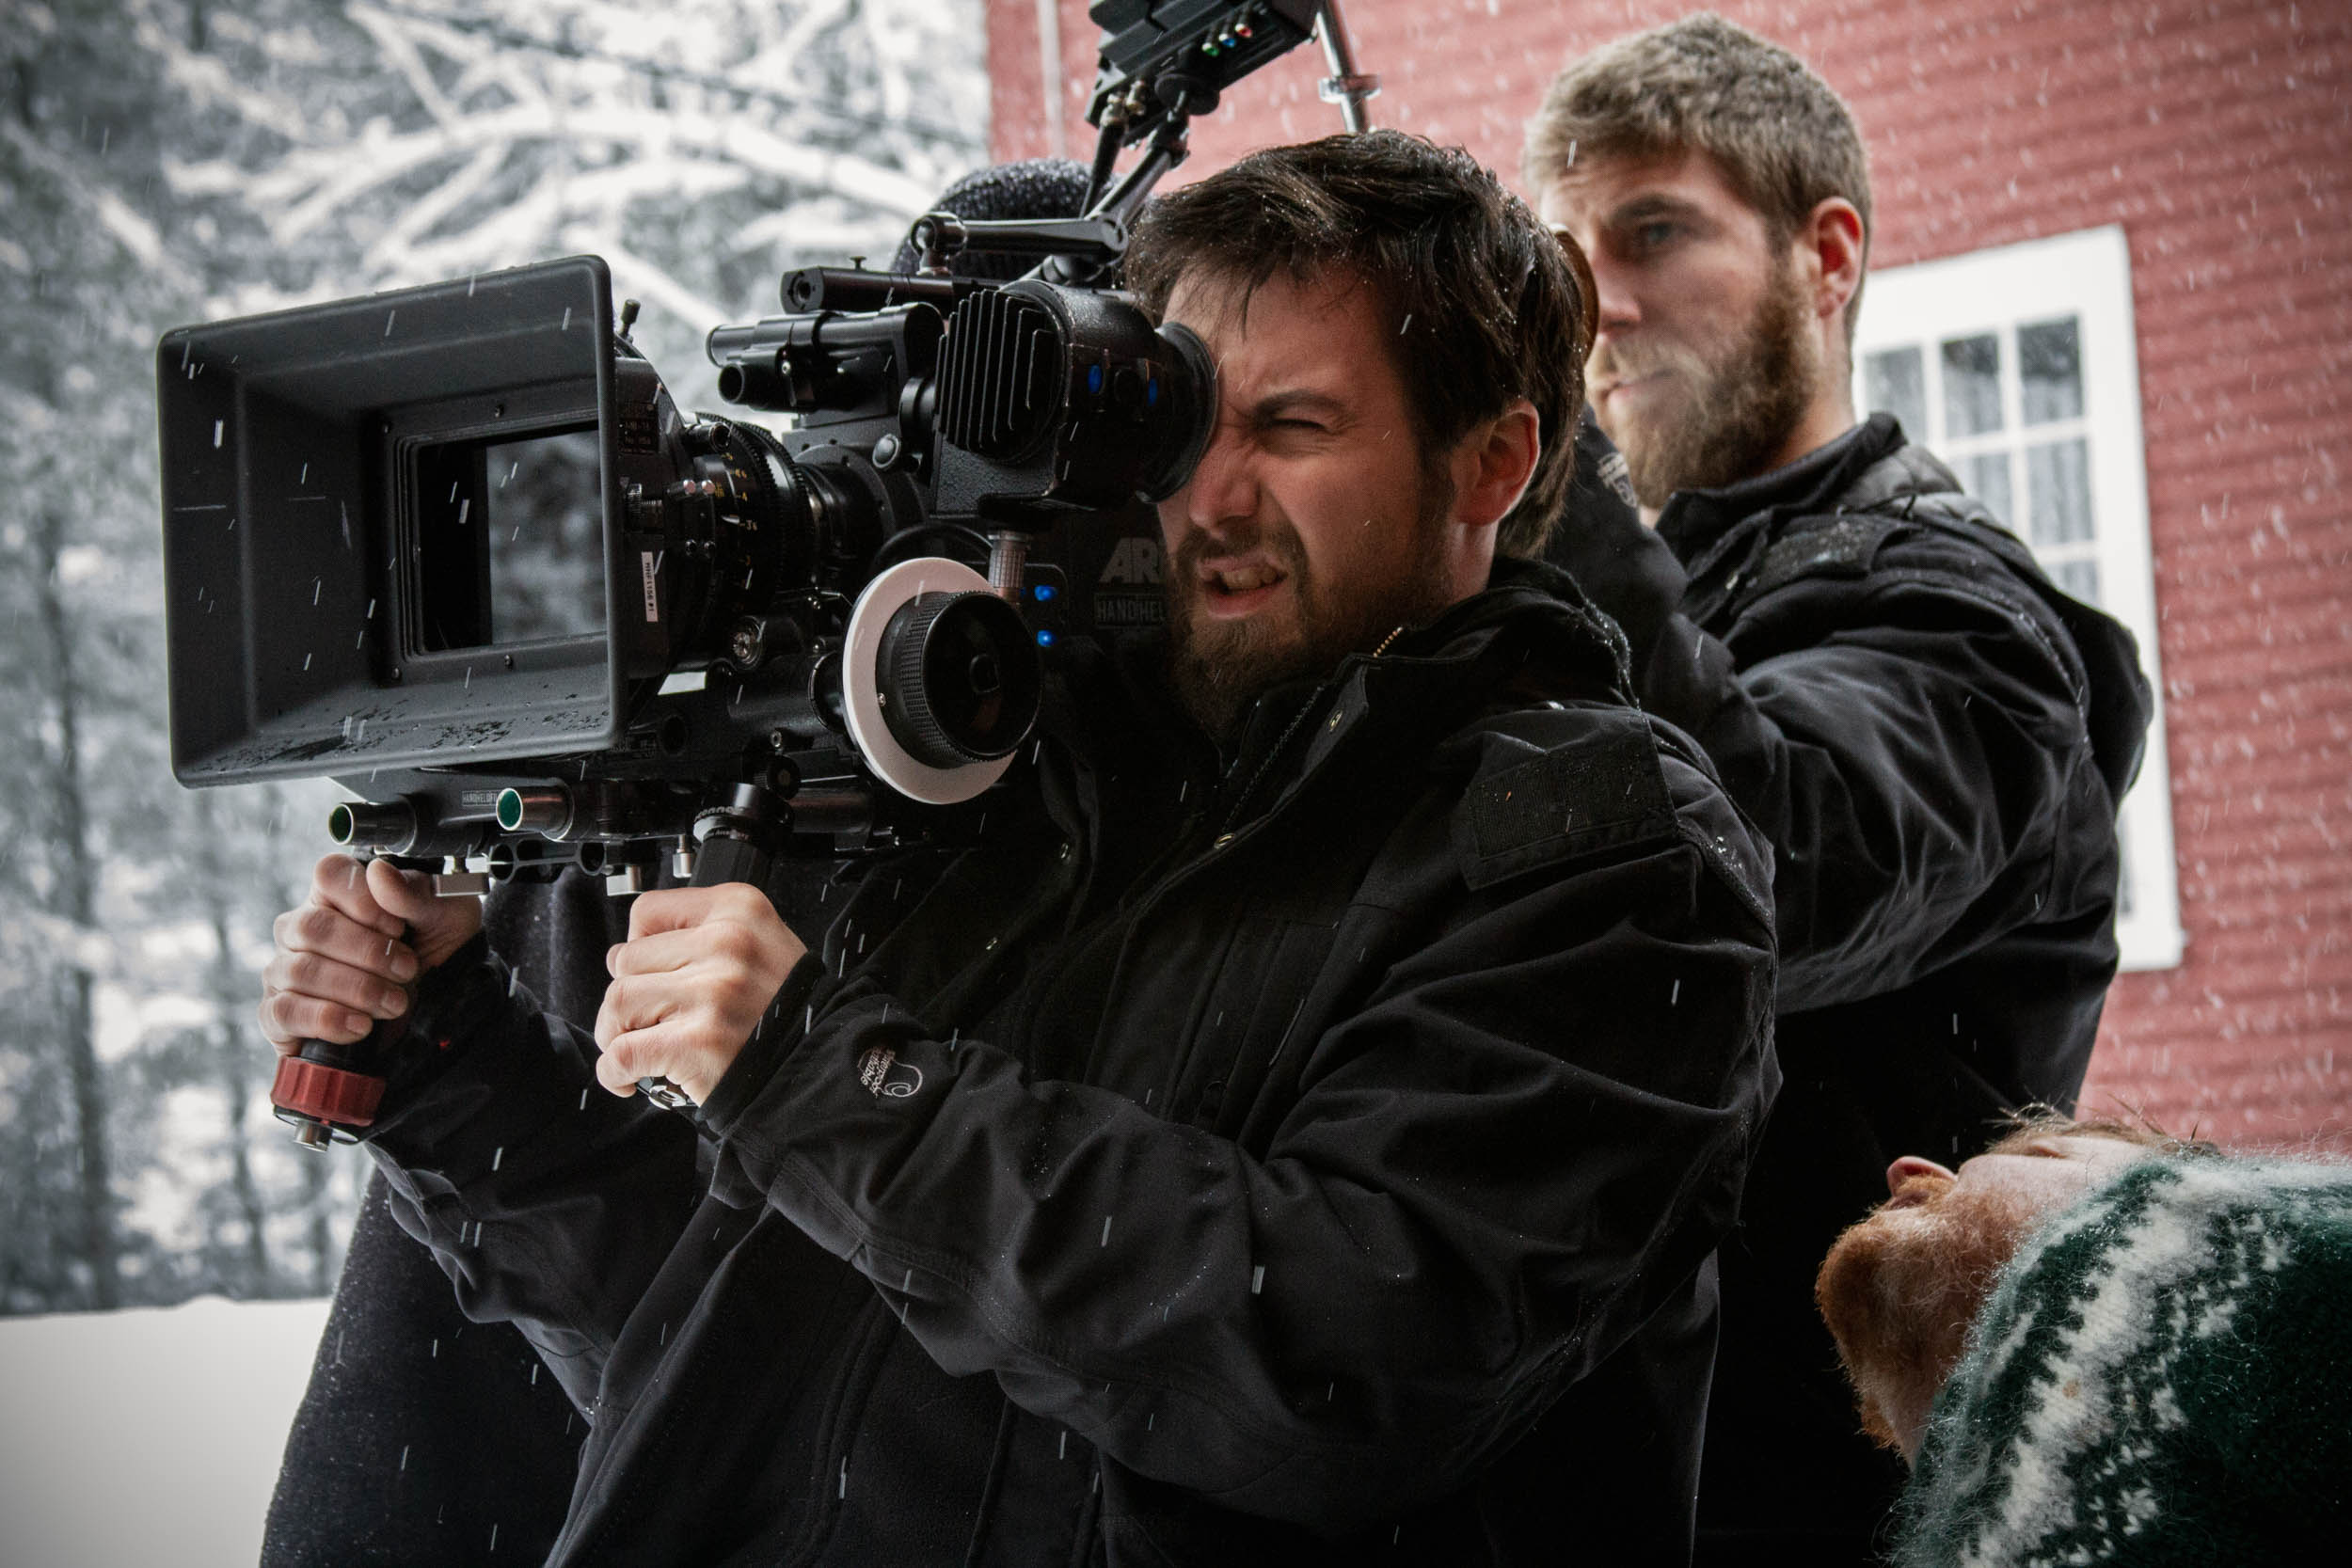 Director of photography matthew mendelson in action